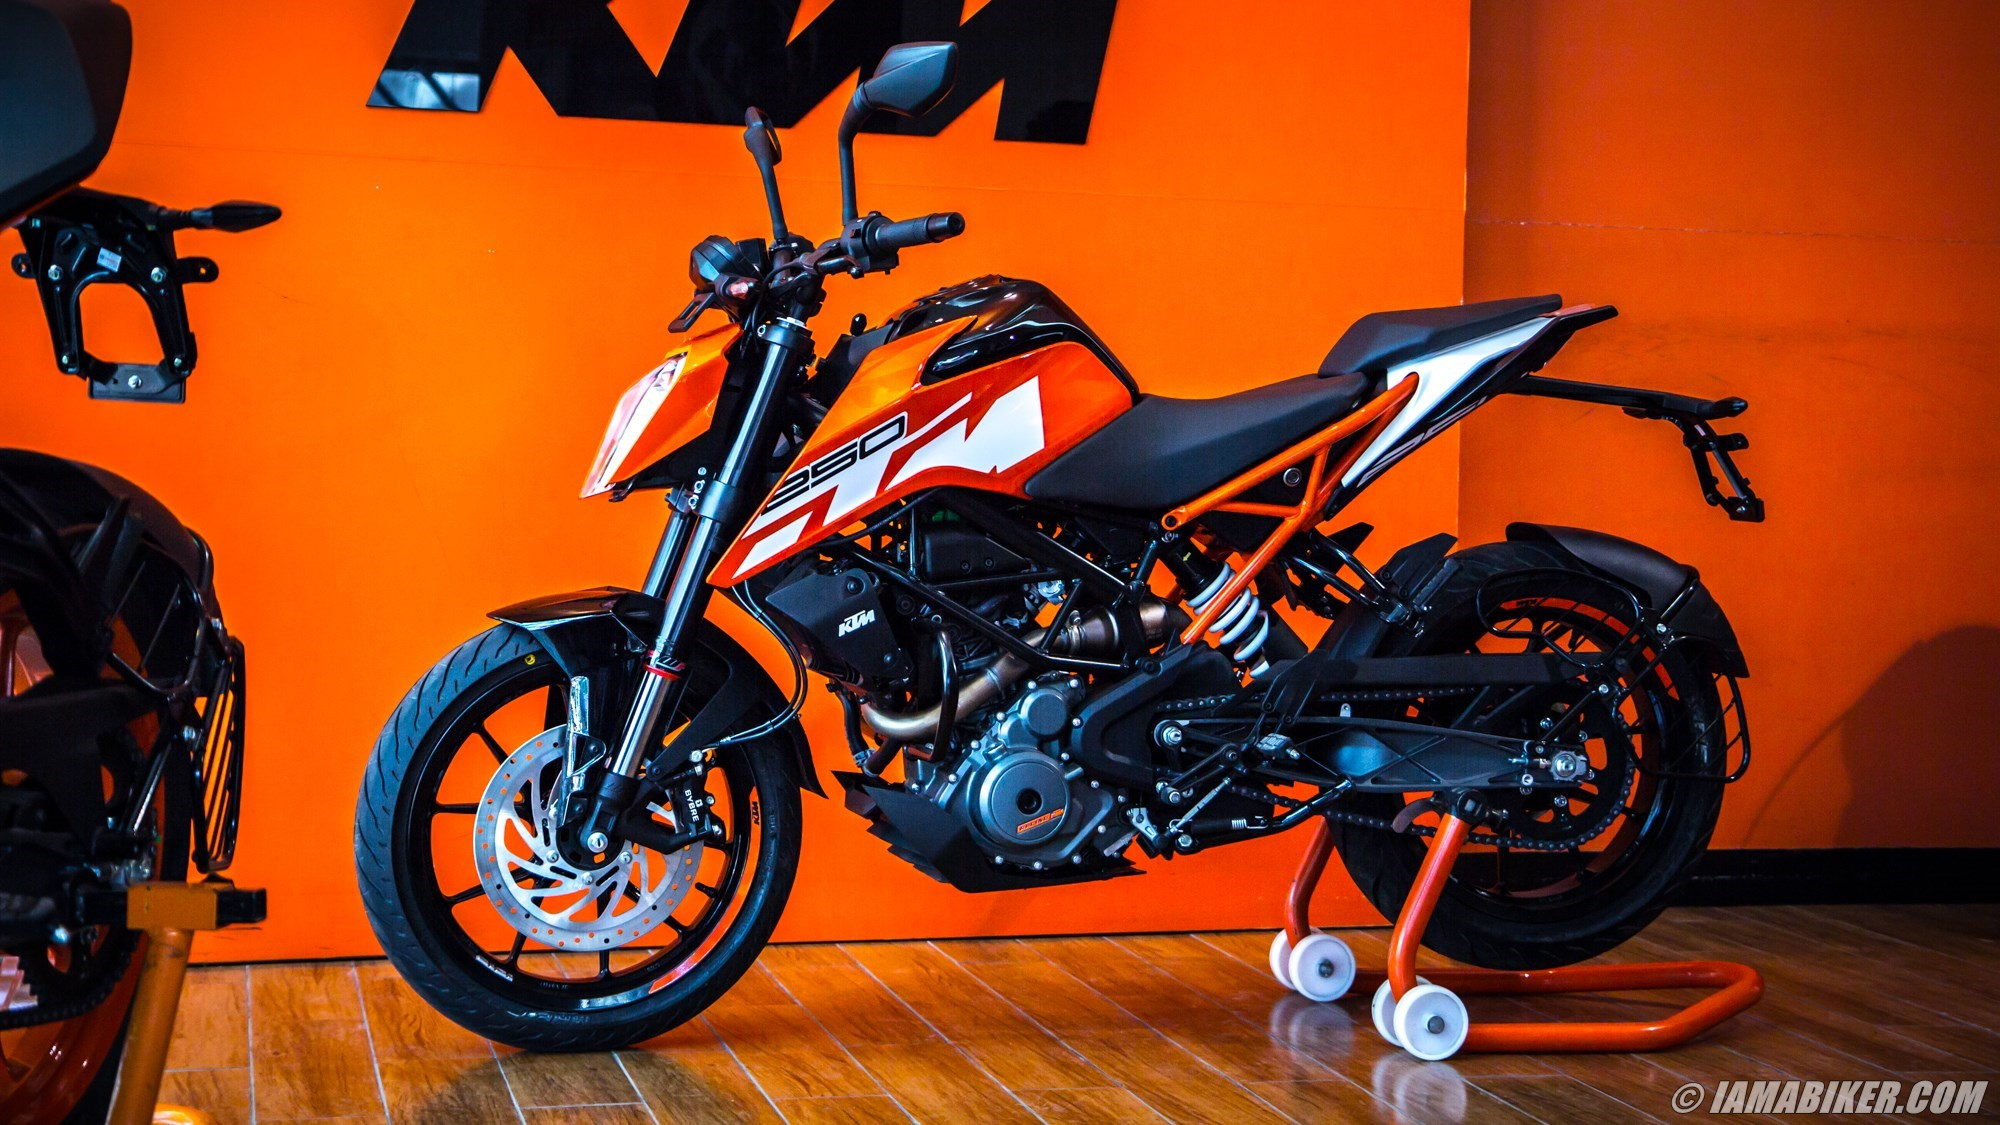 2018 ktm duke 250 abs. unique 2018 before we bring you the full ride report leave with  specifications and a detailed ktm duke 250 image gallery in 2018 ktm duke abs iamabiker